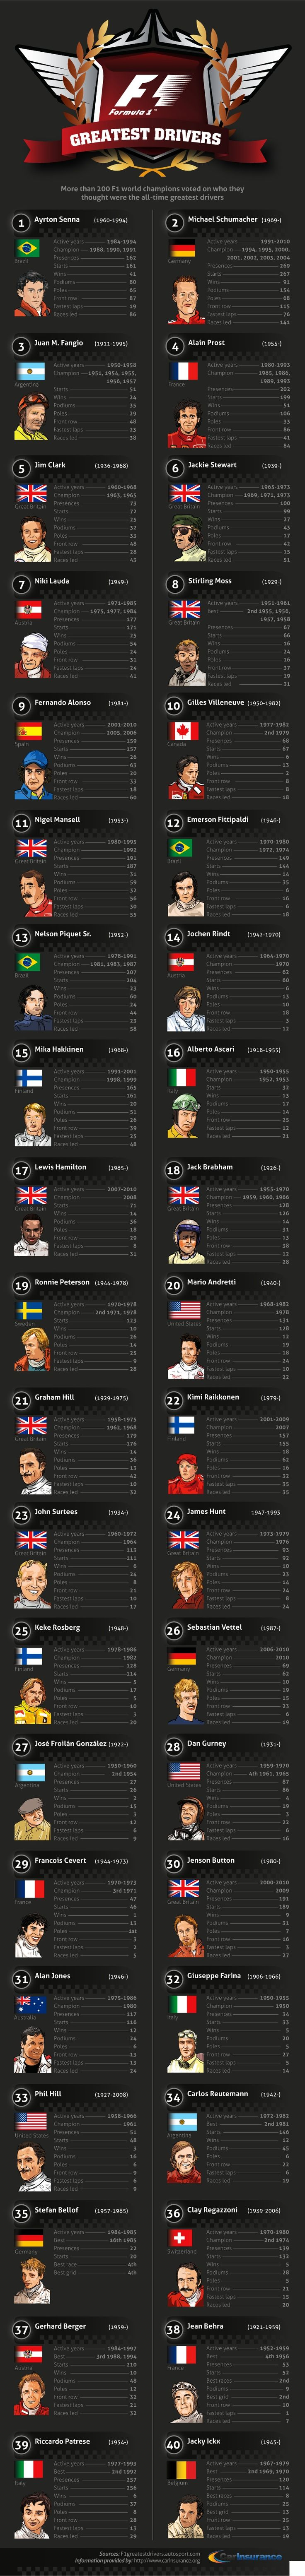 """F1 Greatest Drivers"" prepared by Autosport, 2010"